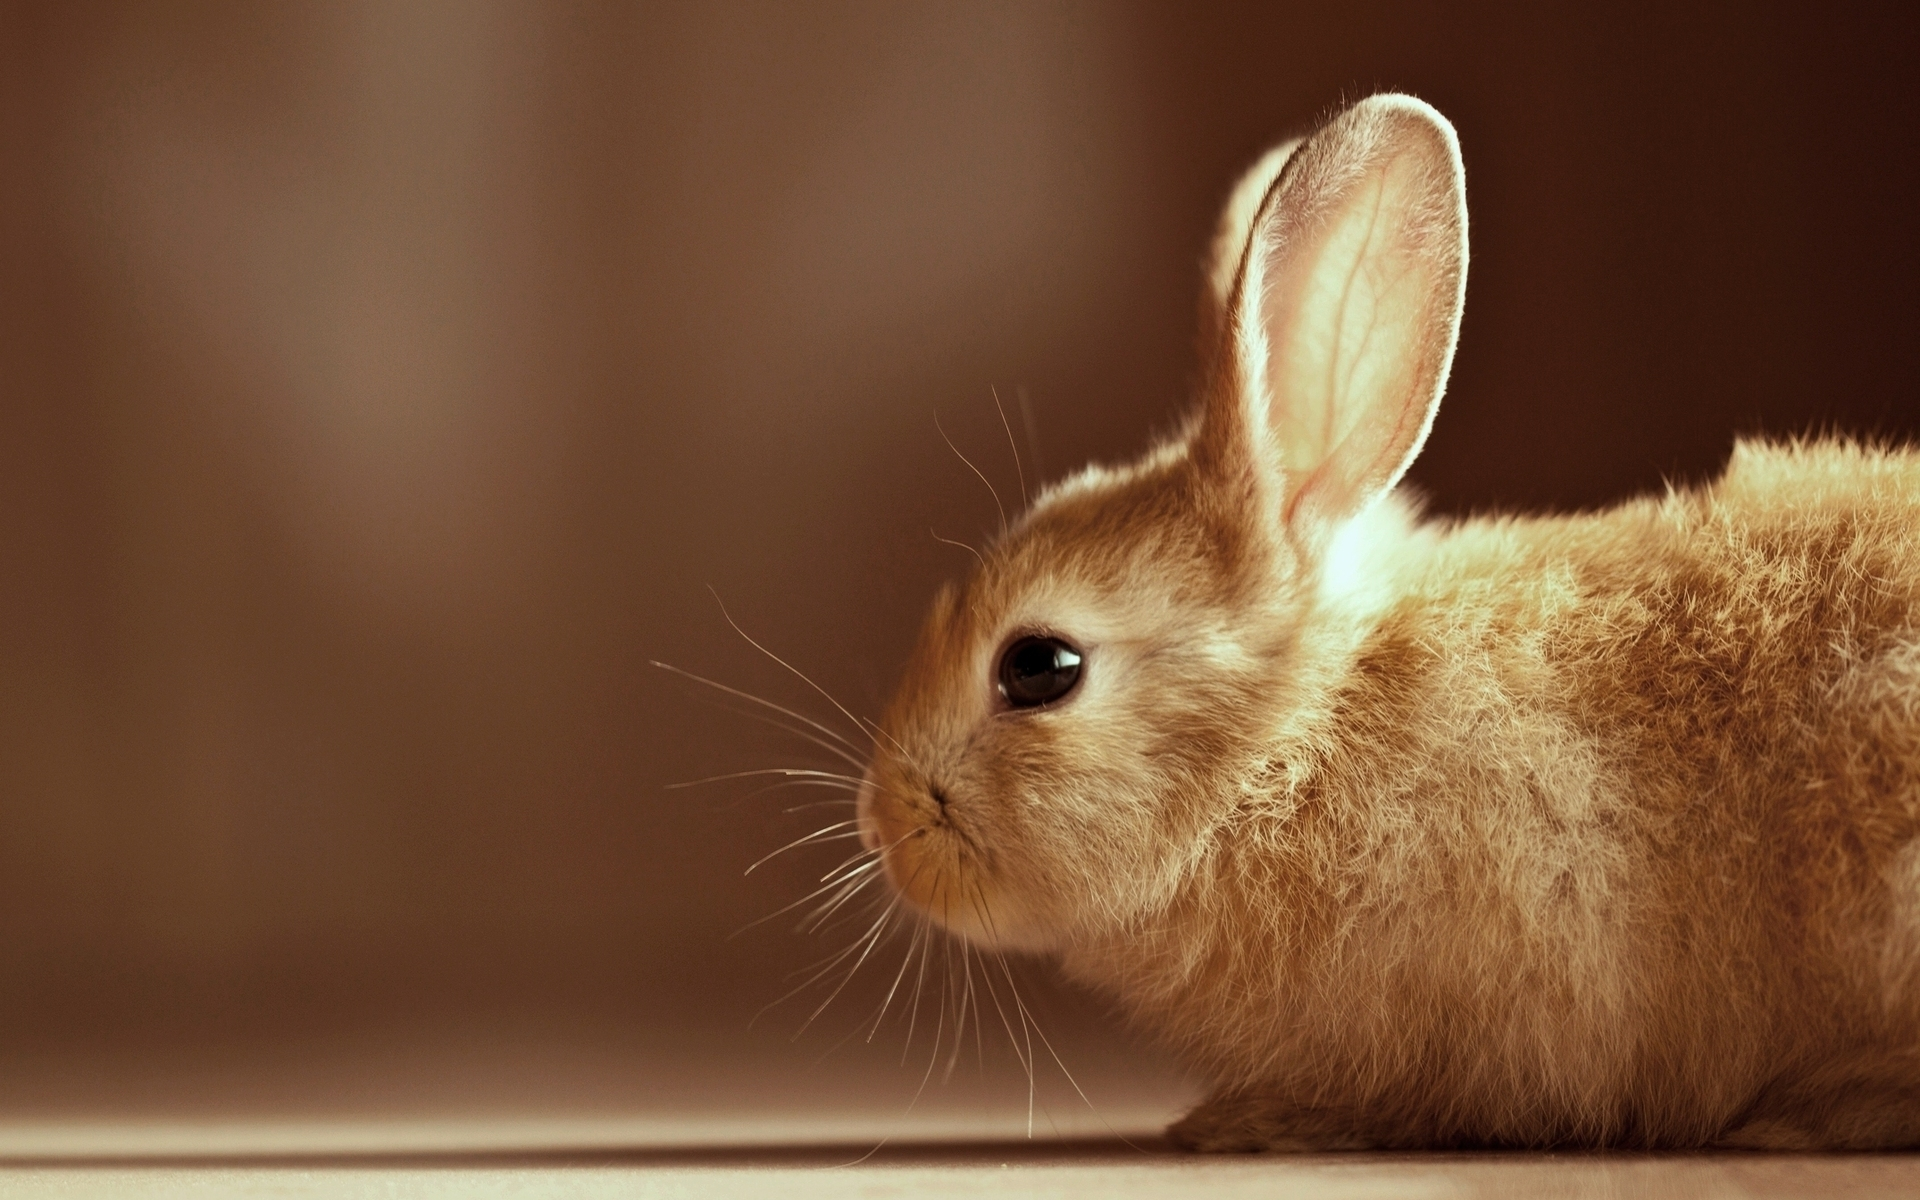 35215 download wallpaper Animals, Rabbits screensavers and pictures for free